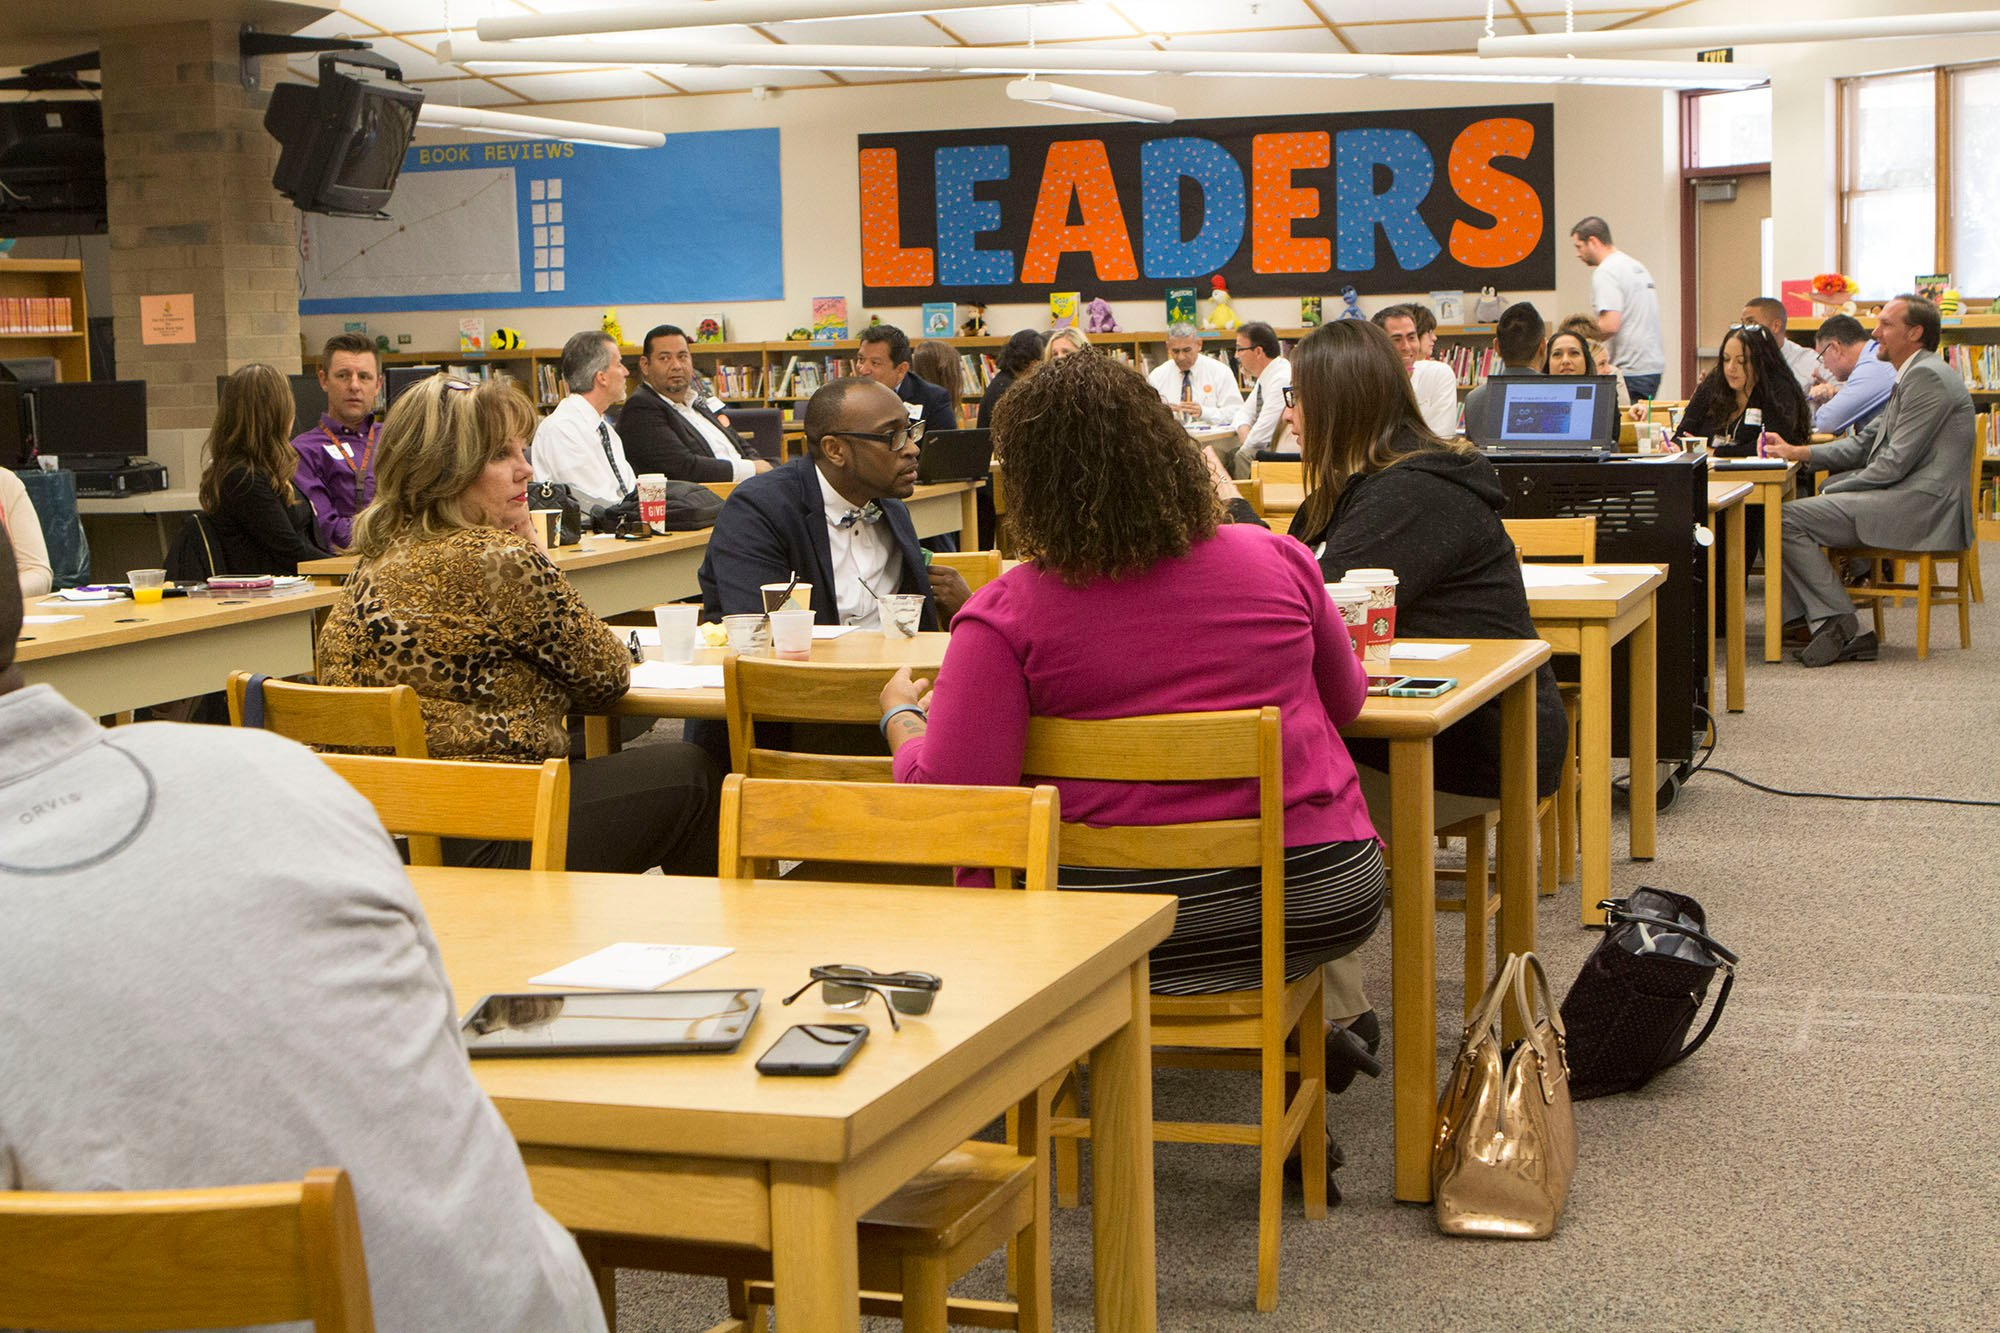 Several school administrators said sharing best practices and ideas helps them